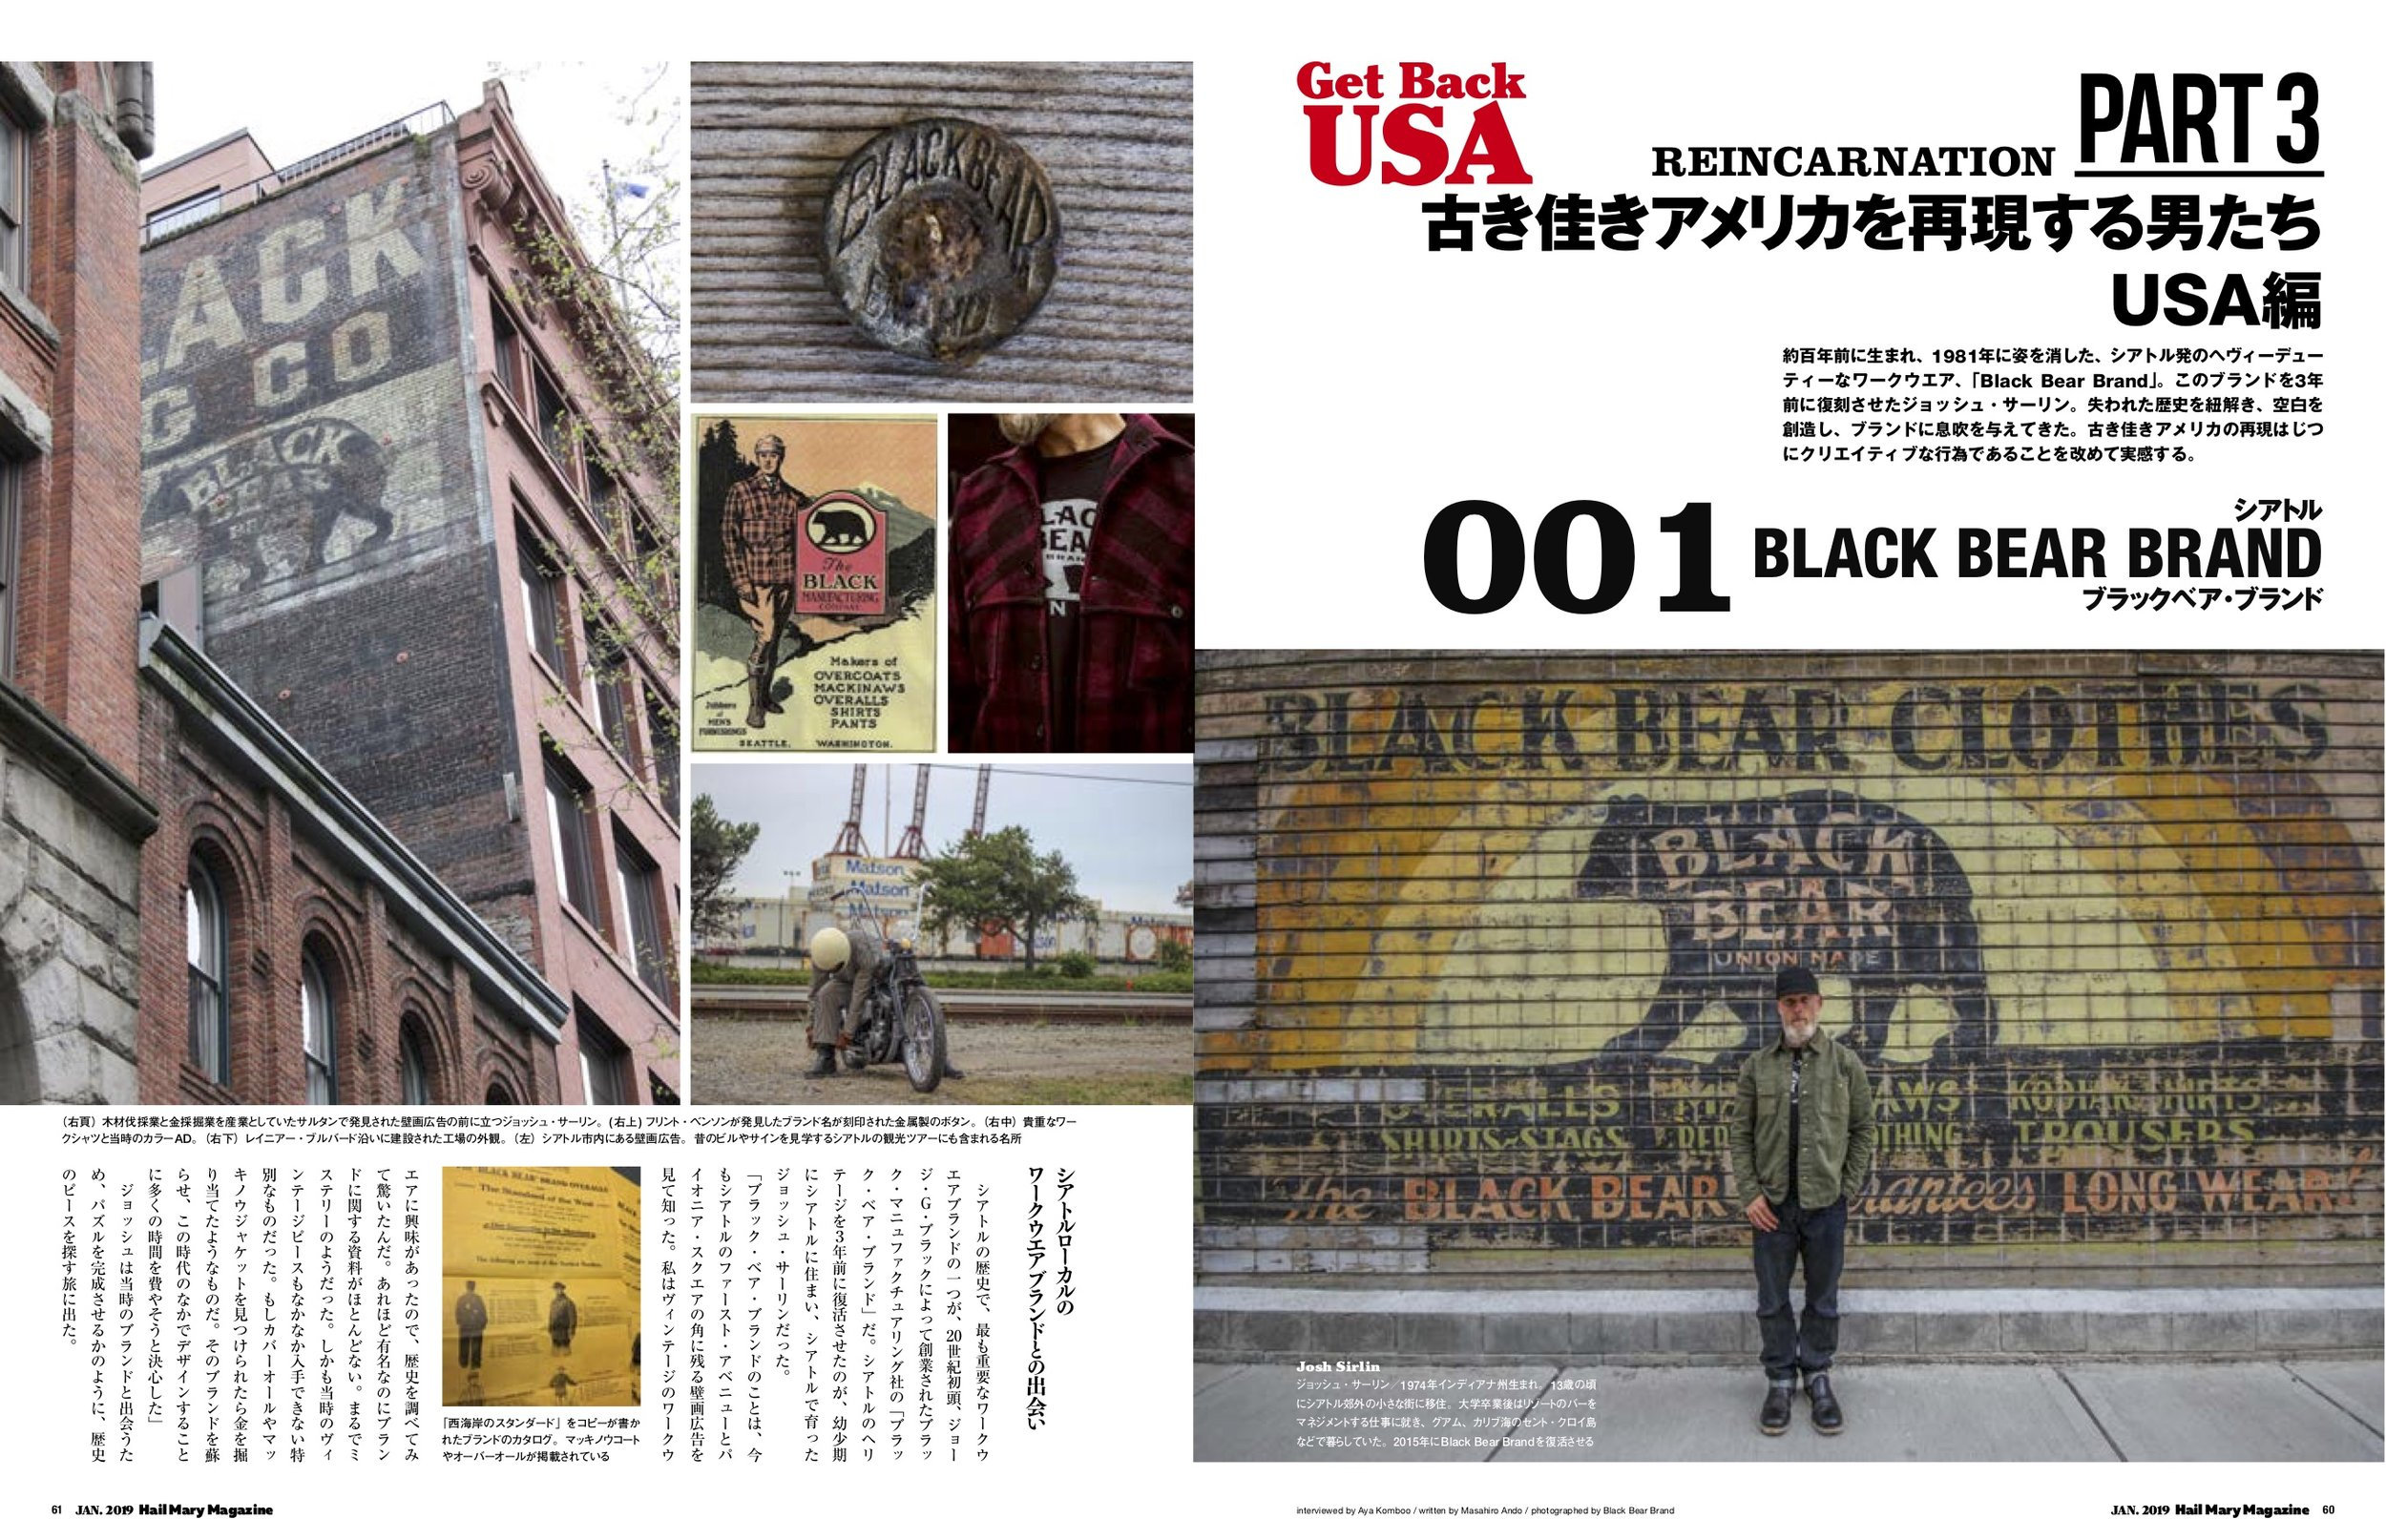 Black Bear Brand - Hail Mary Magazine - Japan